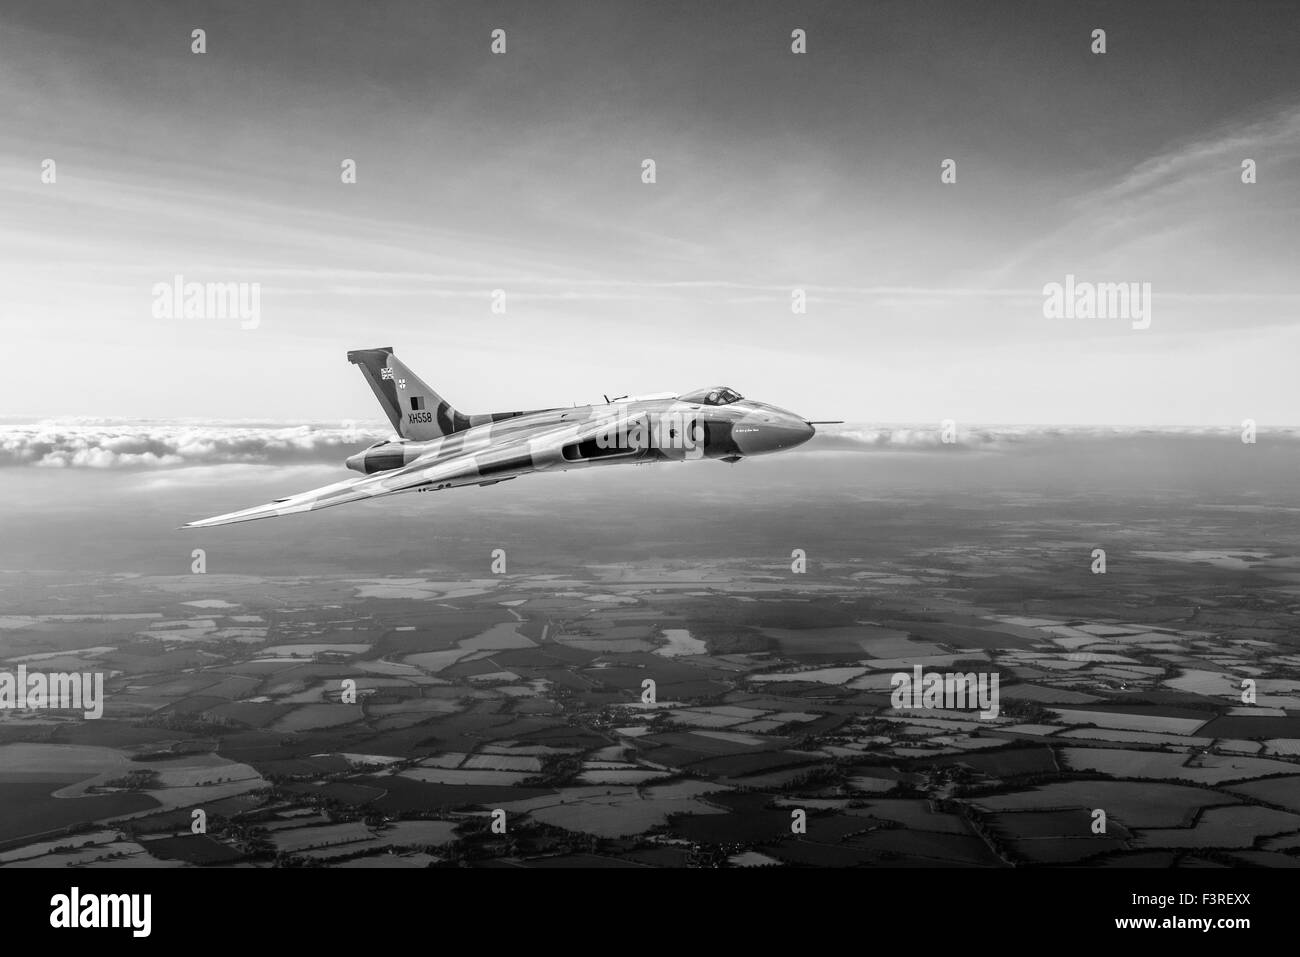 A depiction of an Avro Vulcan delta wing strategic bomber in the skies over the British countryside. Black and white - Stock Image